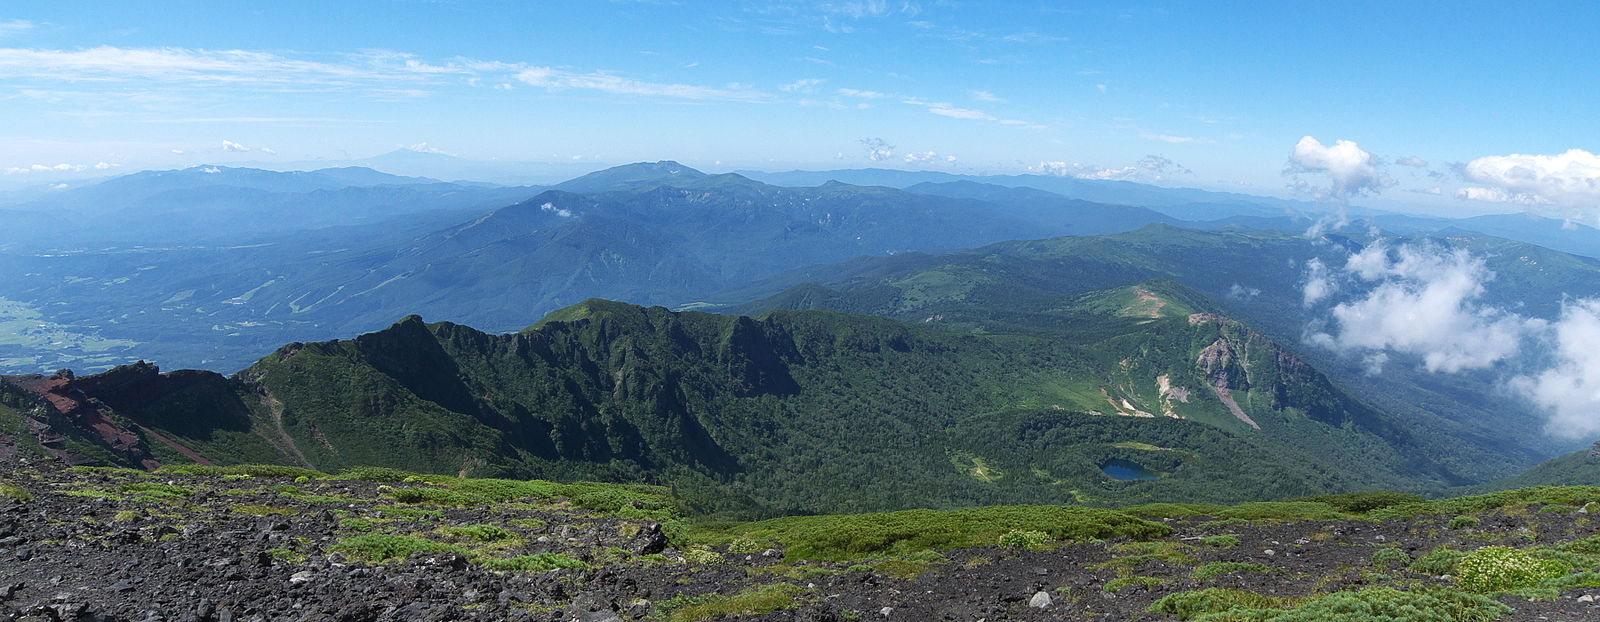 View of Western Iwate Caldera from the peak of Mount Iwate.jpg